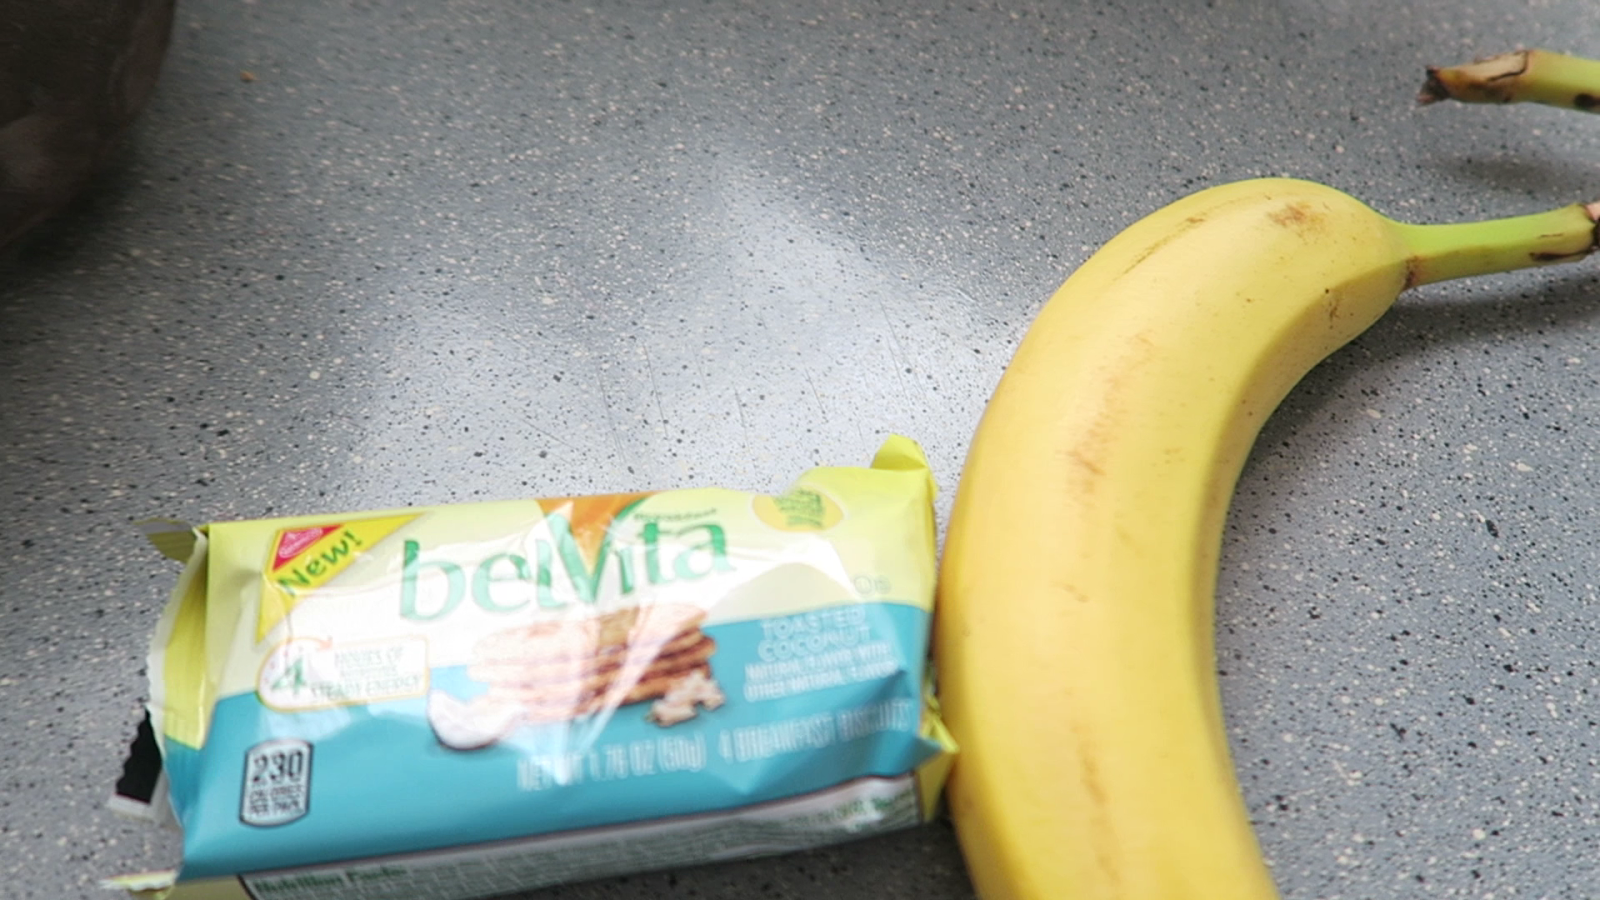 Image: Belvita and banana on kitchen counter ...Being Forty-Something